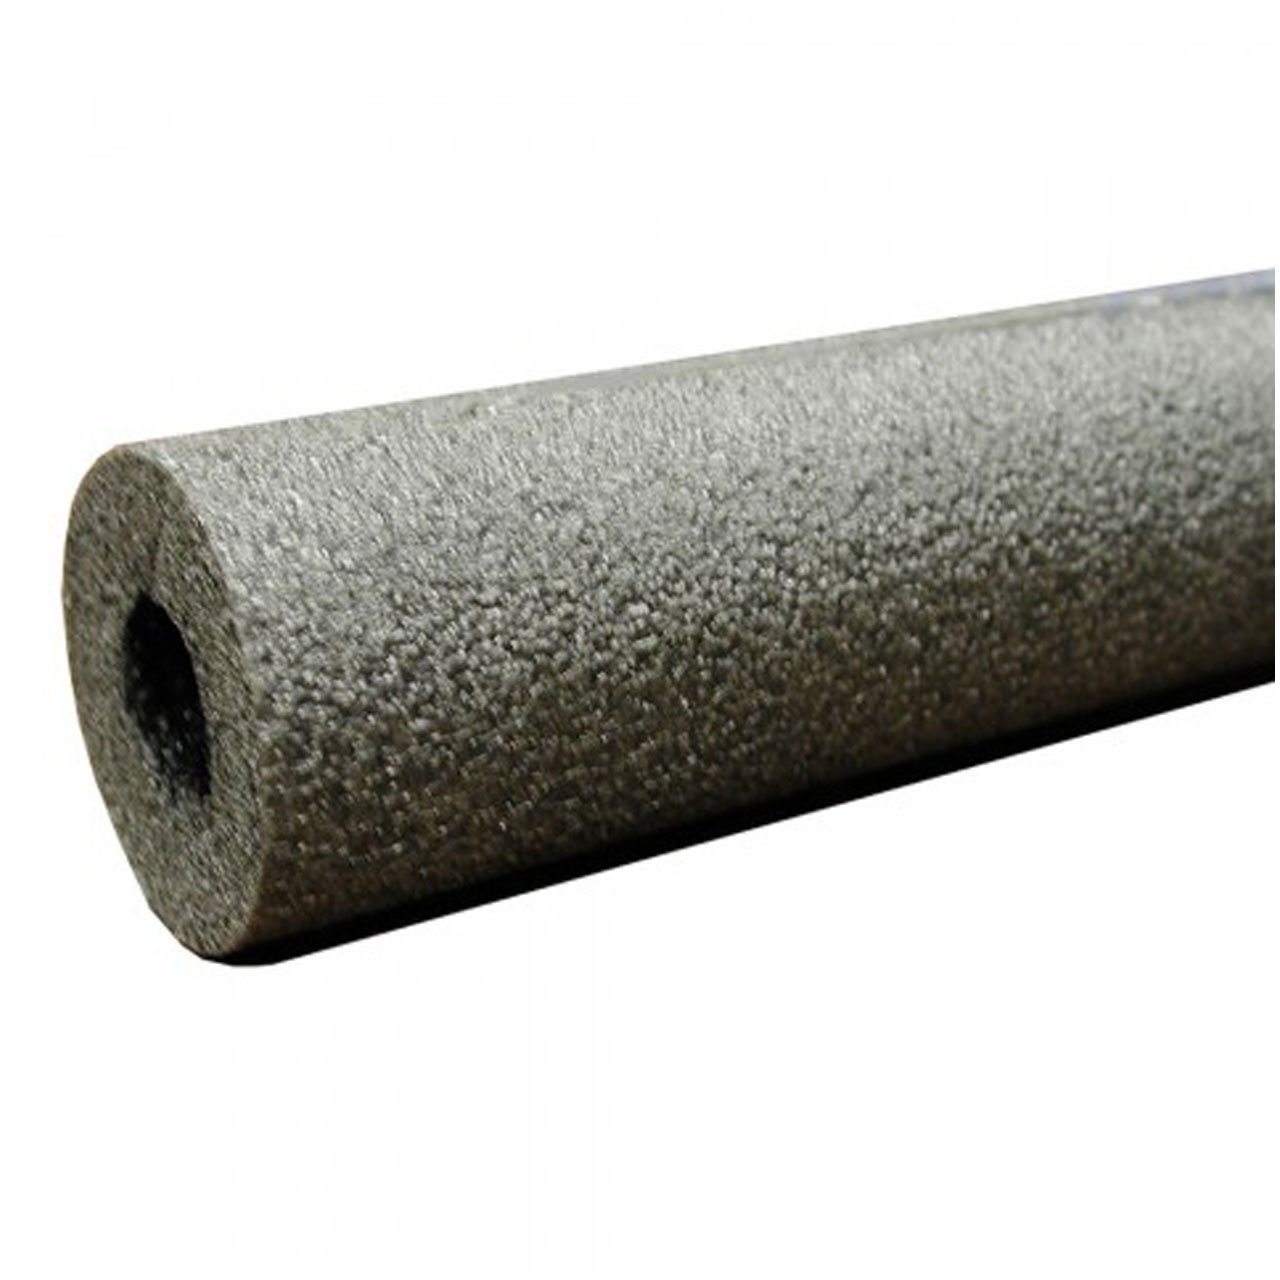 """Jones Stephens Corporation I53078 Self-Sealing Pipe Insulation 1/2"""" Wall Thickness, 7/8"""" (3/4"""" CTS 1/2"""" IPS) ID, Small, Black"""